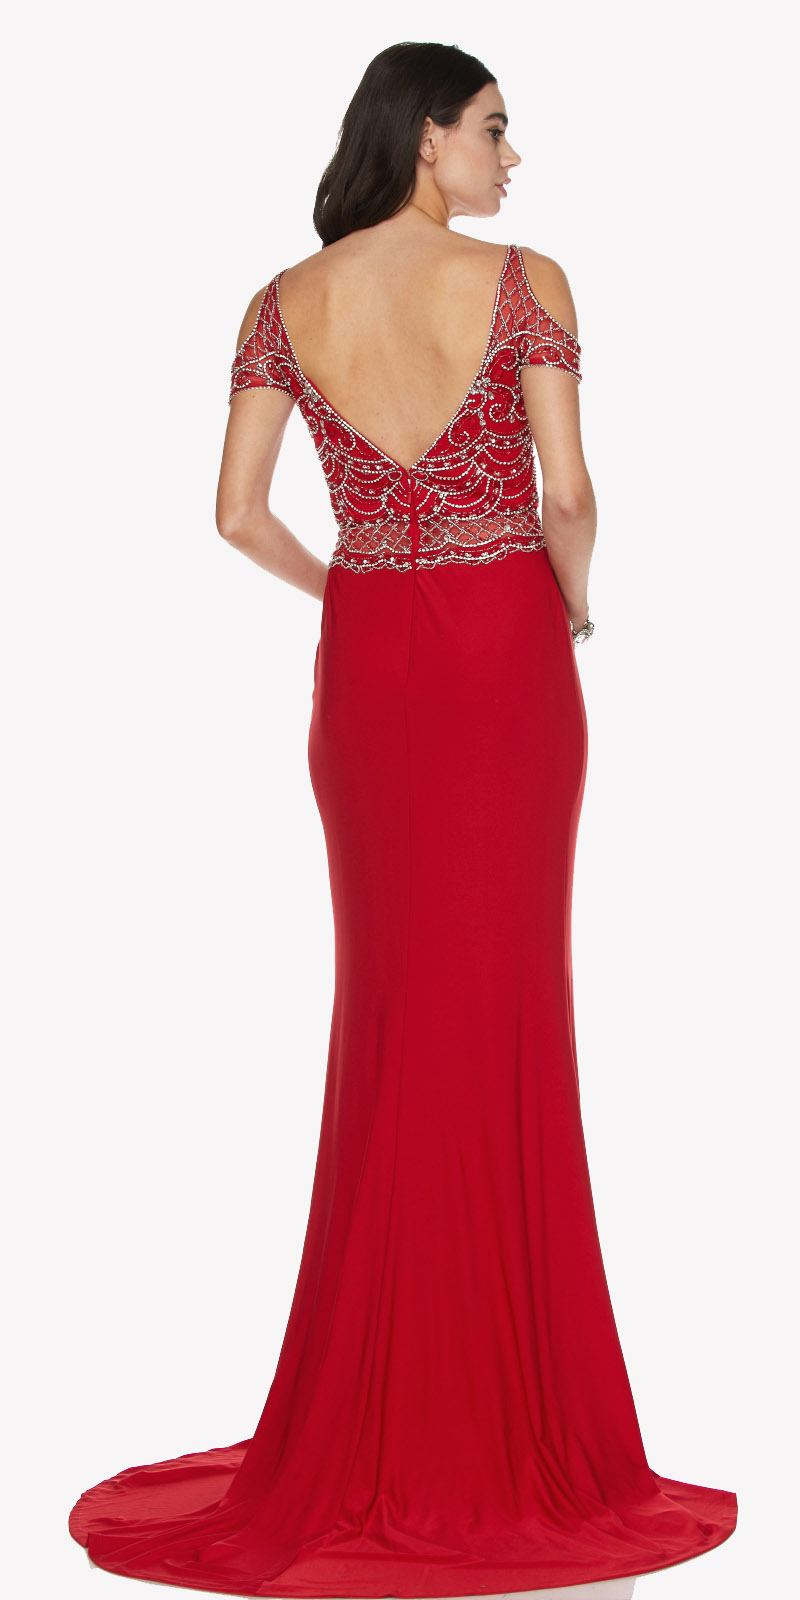 Red Cold Shoulder Evening Gown With V Shape Open Back And Train